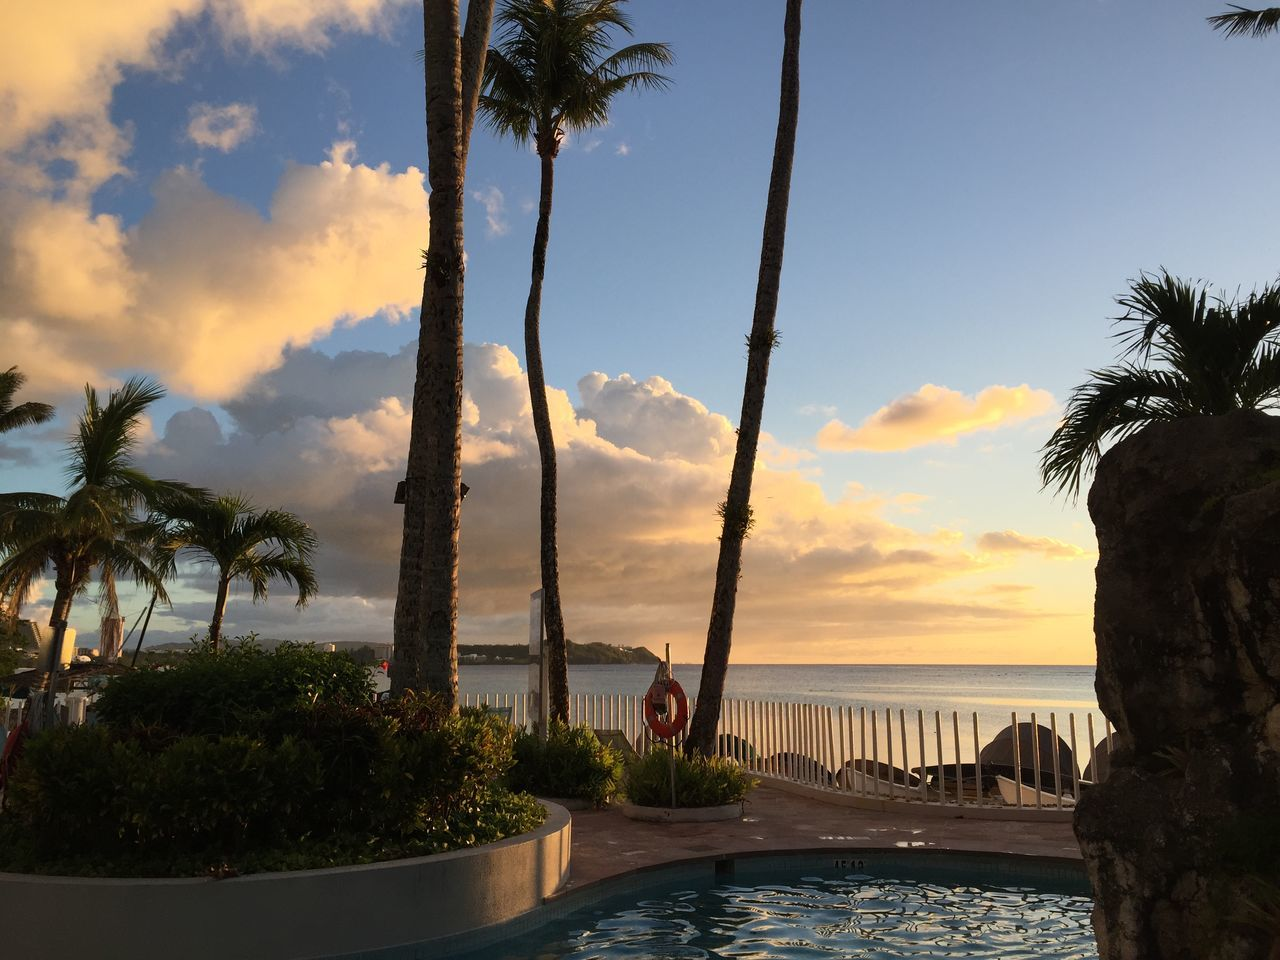 palm tree, tree, sky, water, cloud - sky, sea, beauty in nature, nature, sunset, scenics, swimming pool, tranquility, tranquil scene, horizon over water, beach, no people, tree trunk, growth, outdoors, day